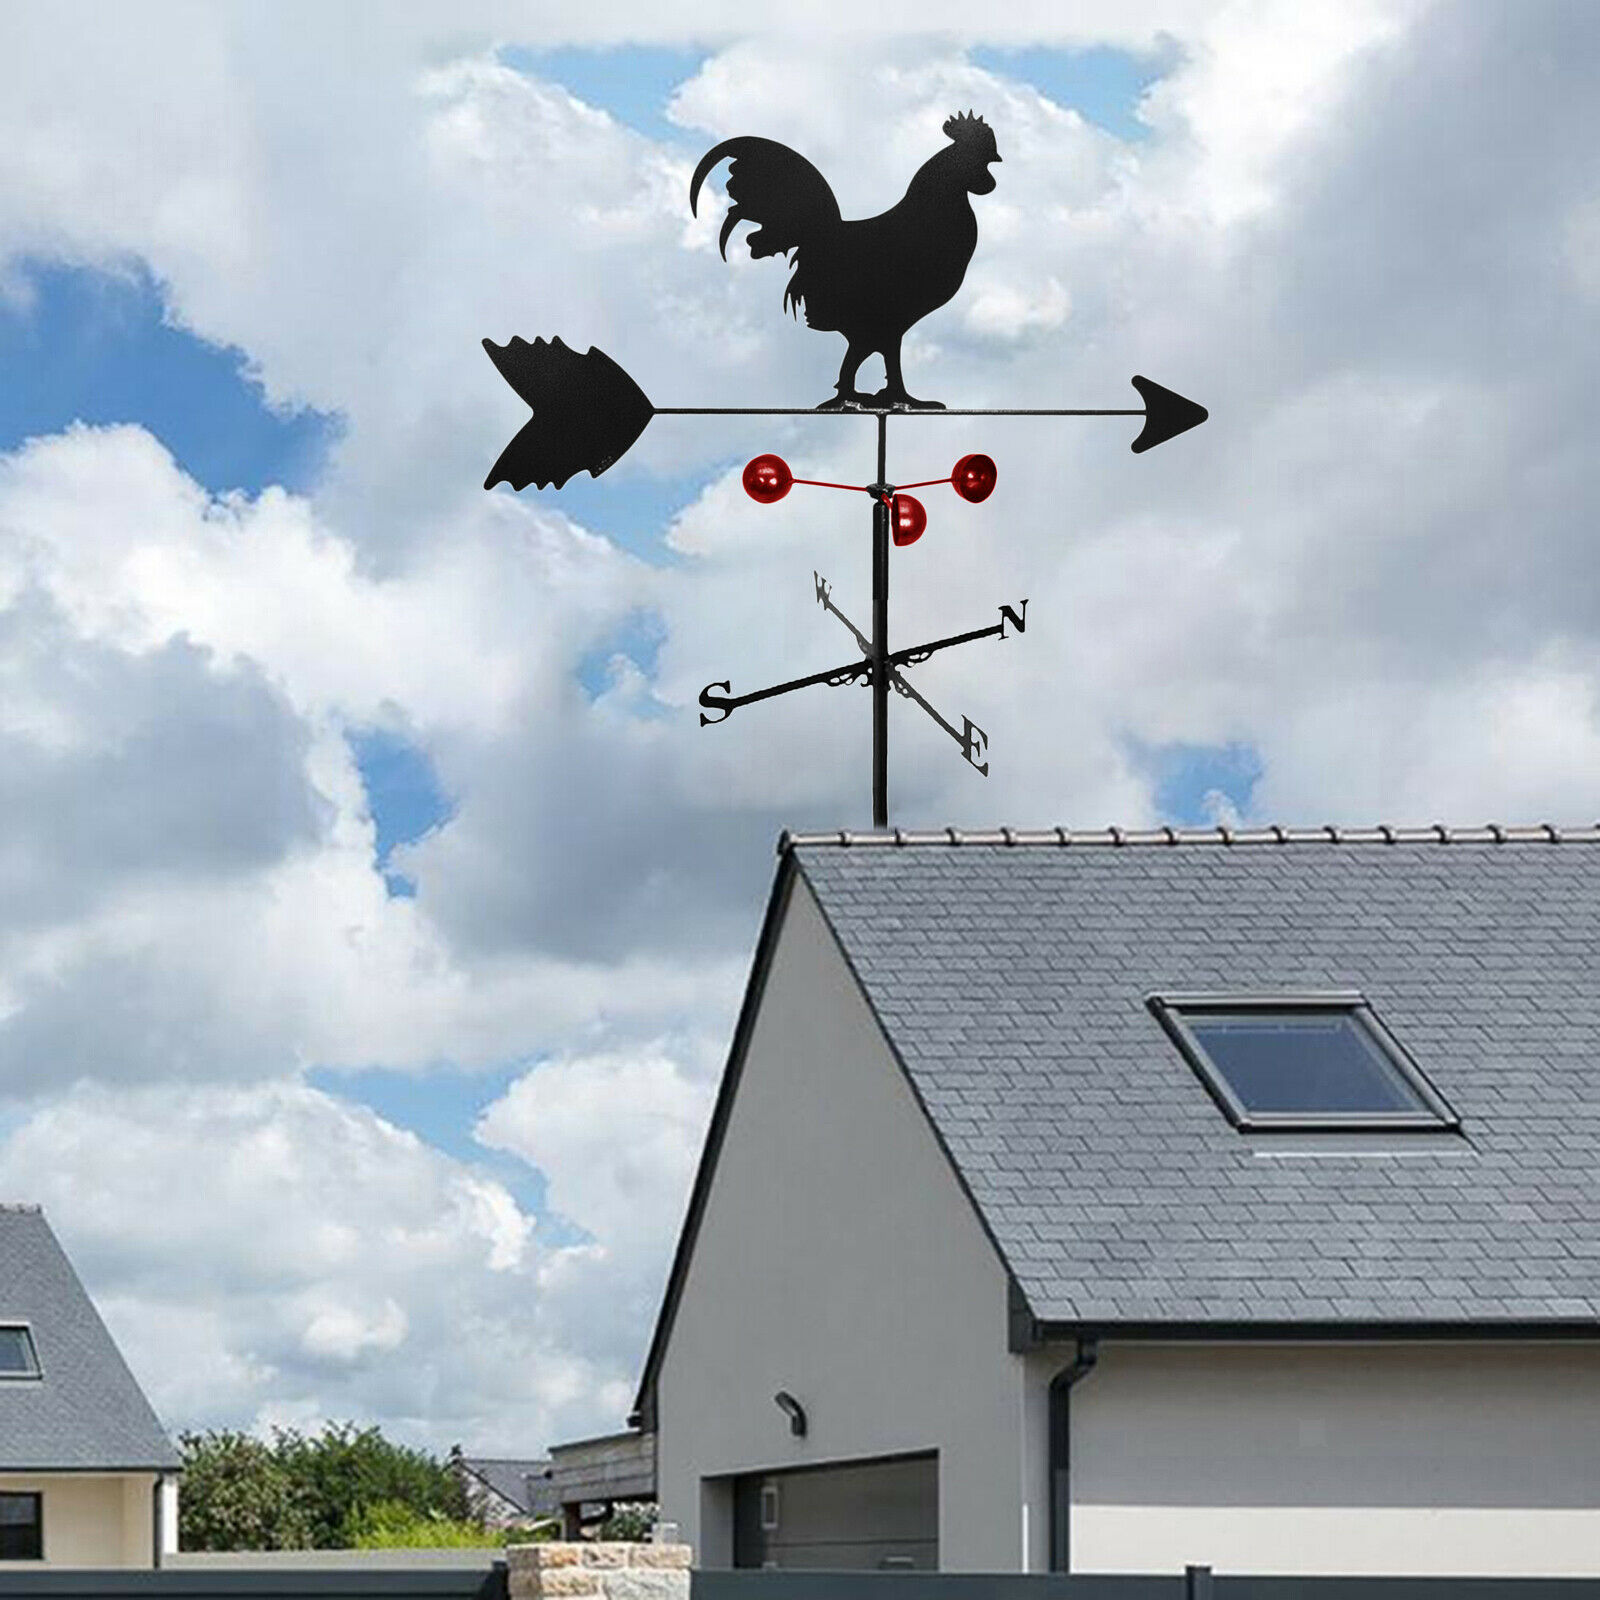 Metal Rooster Weathervane Wind Direction Indicator Yard Stake Ornament